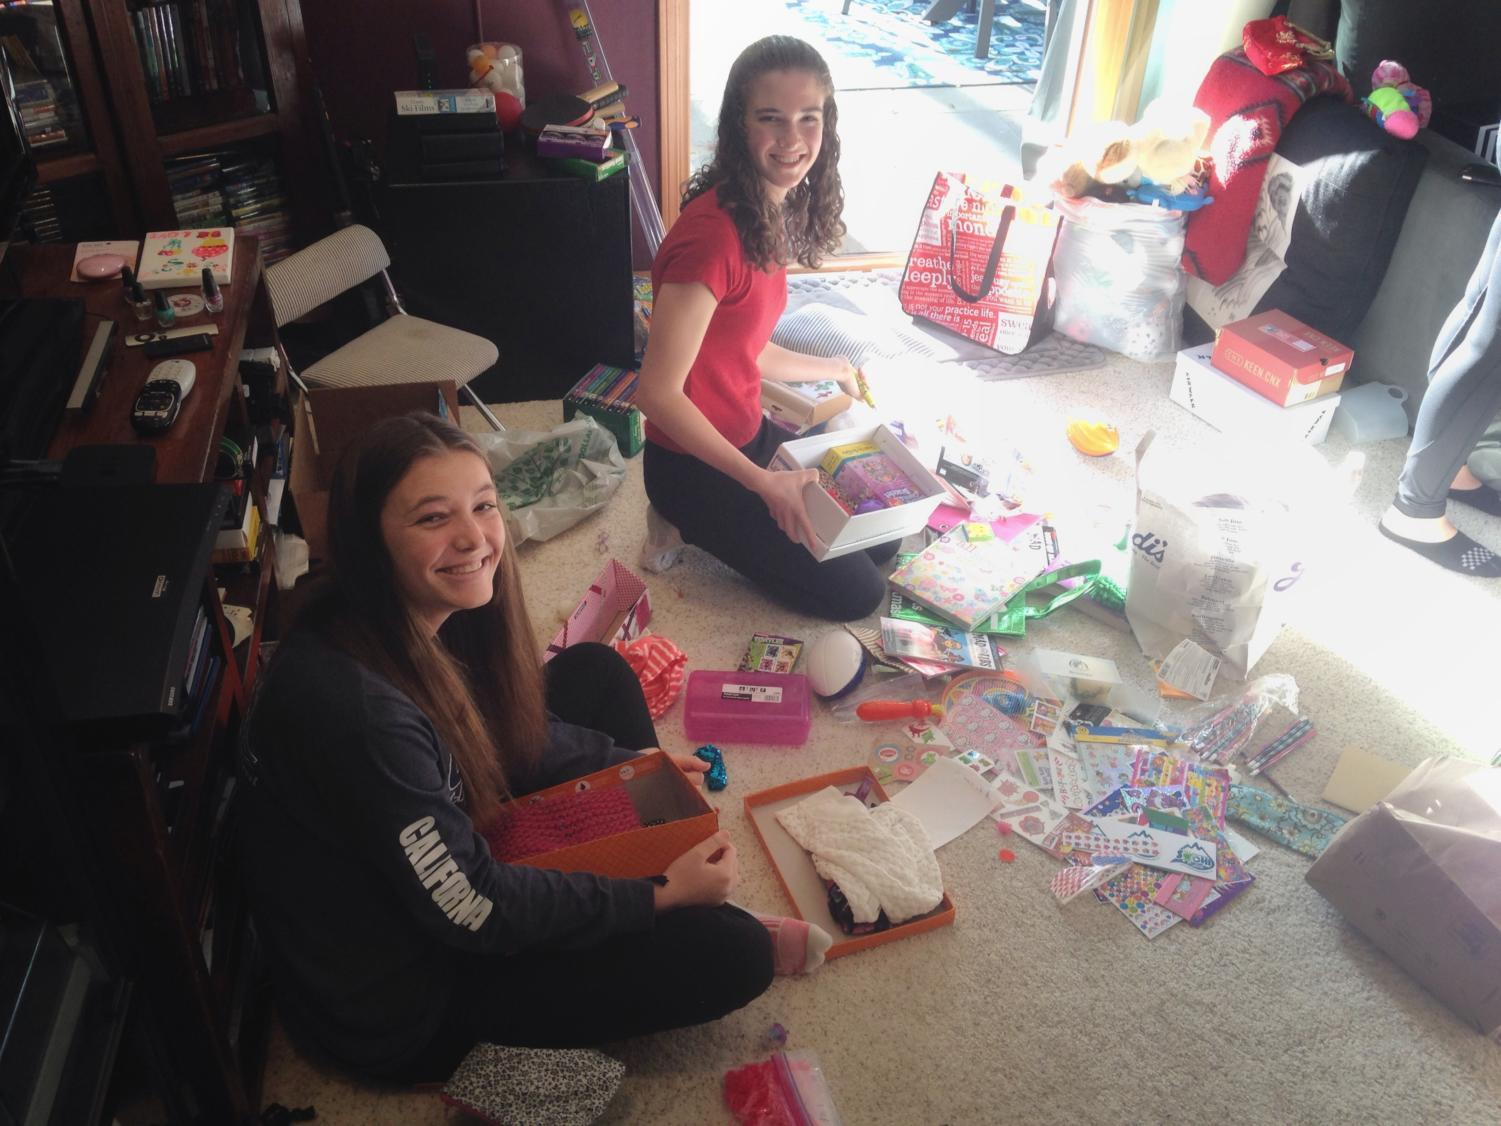 Tayler+Meeks+and+Skylar+Peters+worked+together+to+fill+shoeboxes+with+toys+and+gifts.